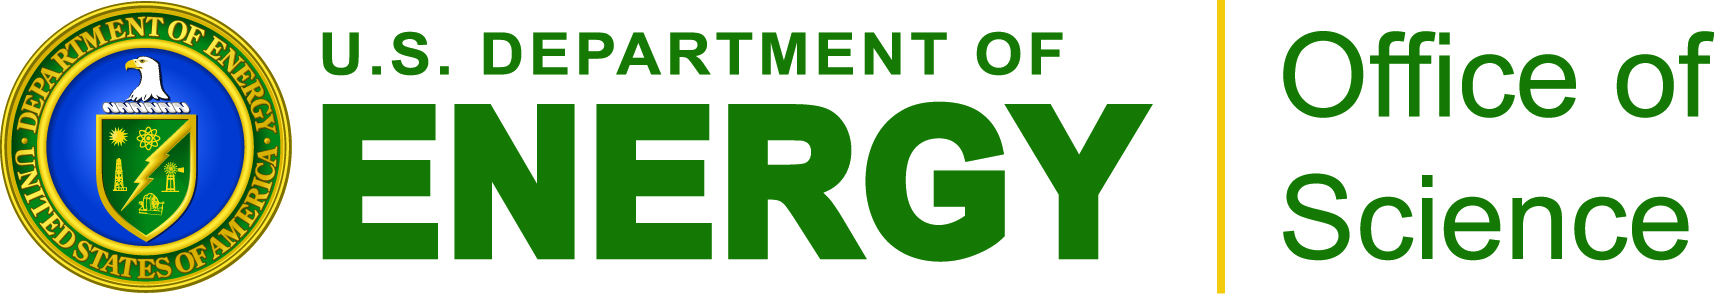 Department of Energy (DoE) Office of Science (SC)